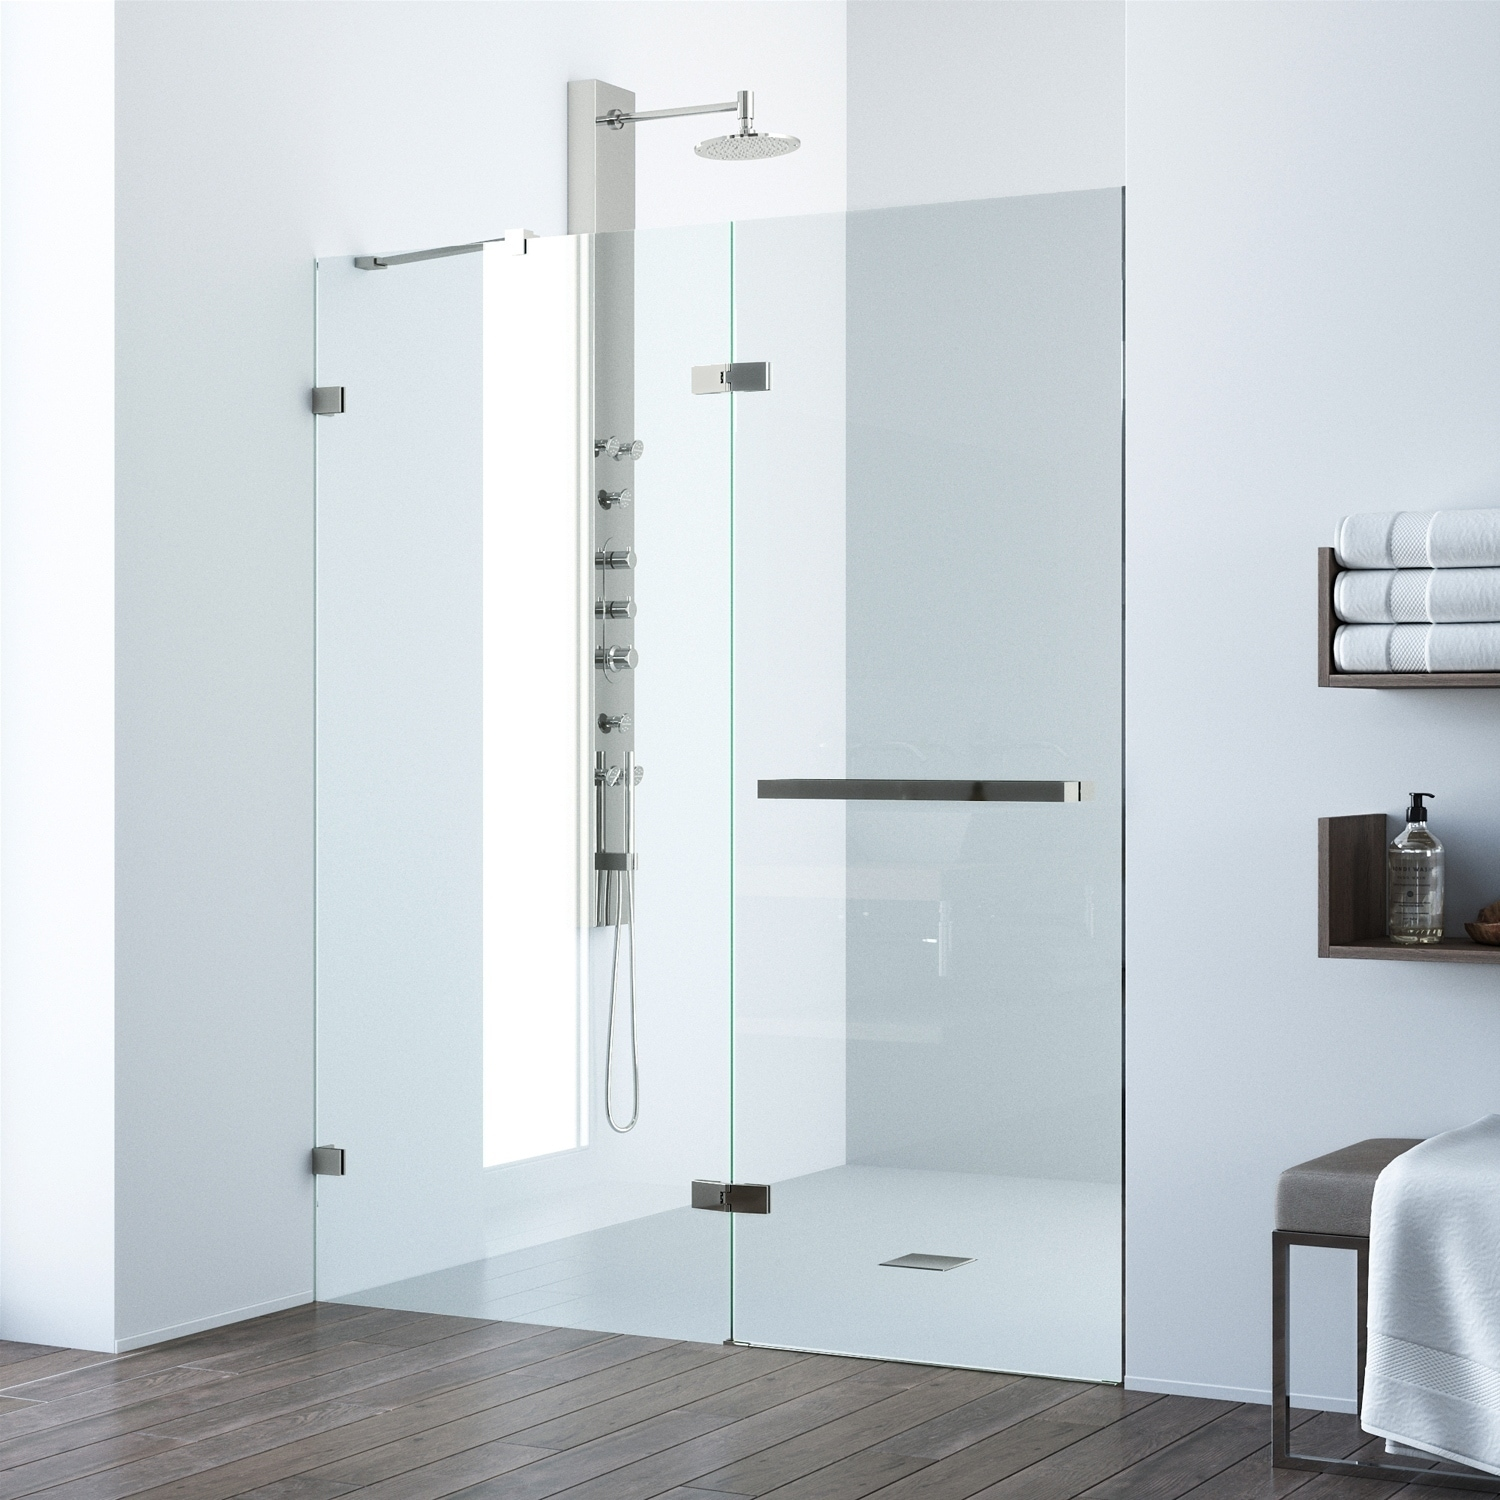 Details About Vigo Nyos Clear Adjustable Frameless Hinged Shower Door Clear